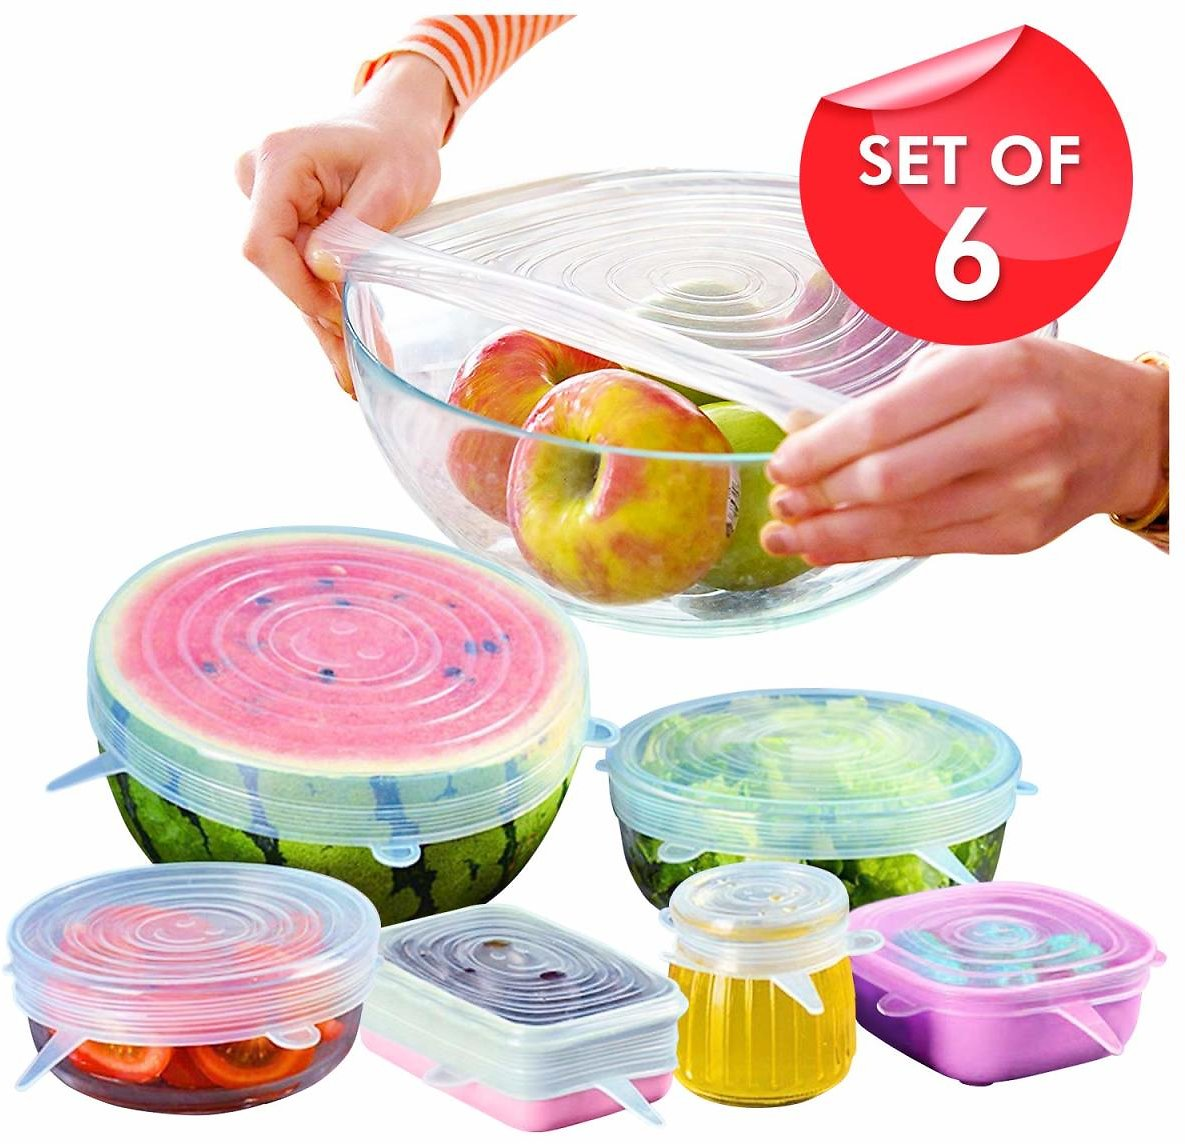 6-Pack of Silicone Stretch Lids, Various Sizes for Different Shapes of Containers – Eco-friendly, BPA-free and Leak-proof (Clear